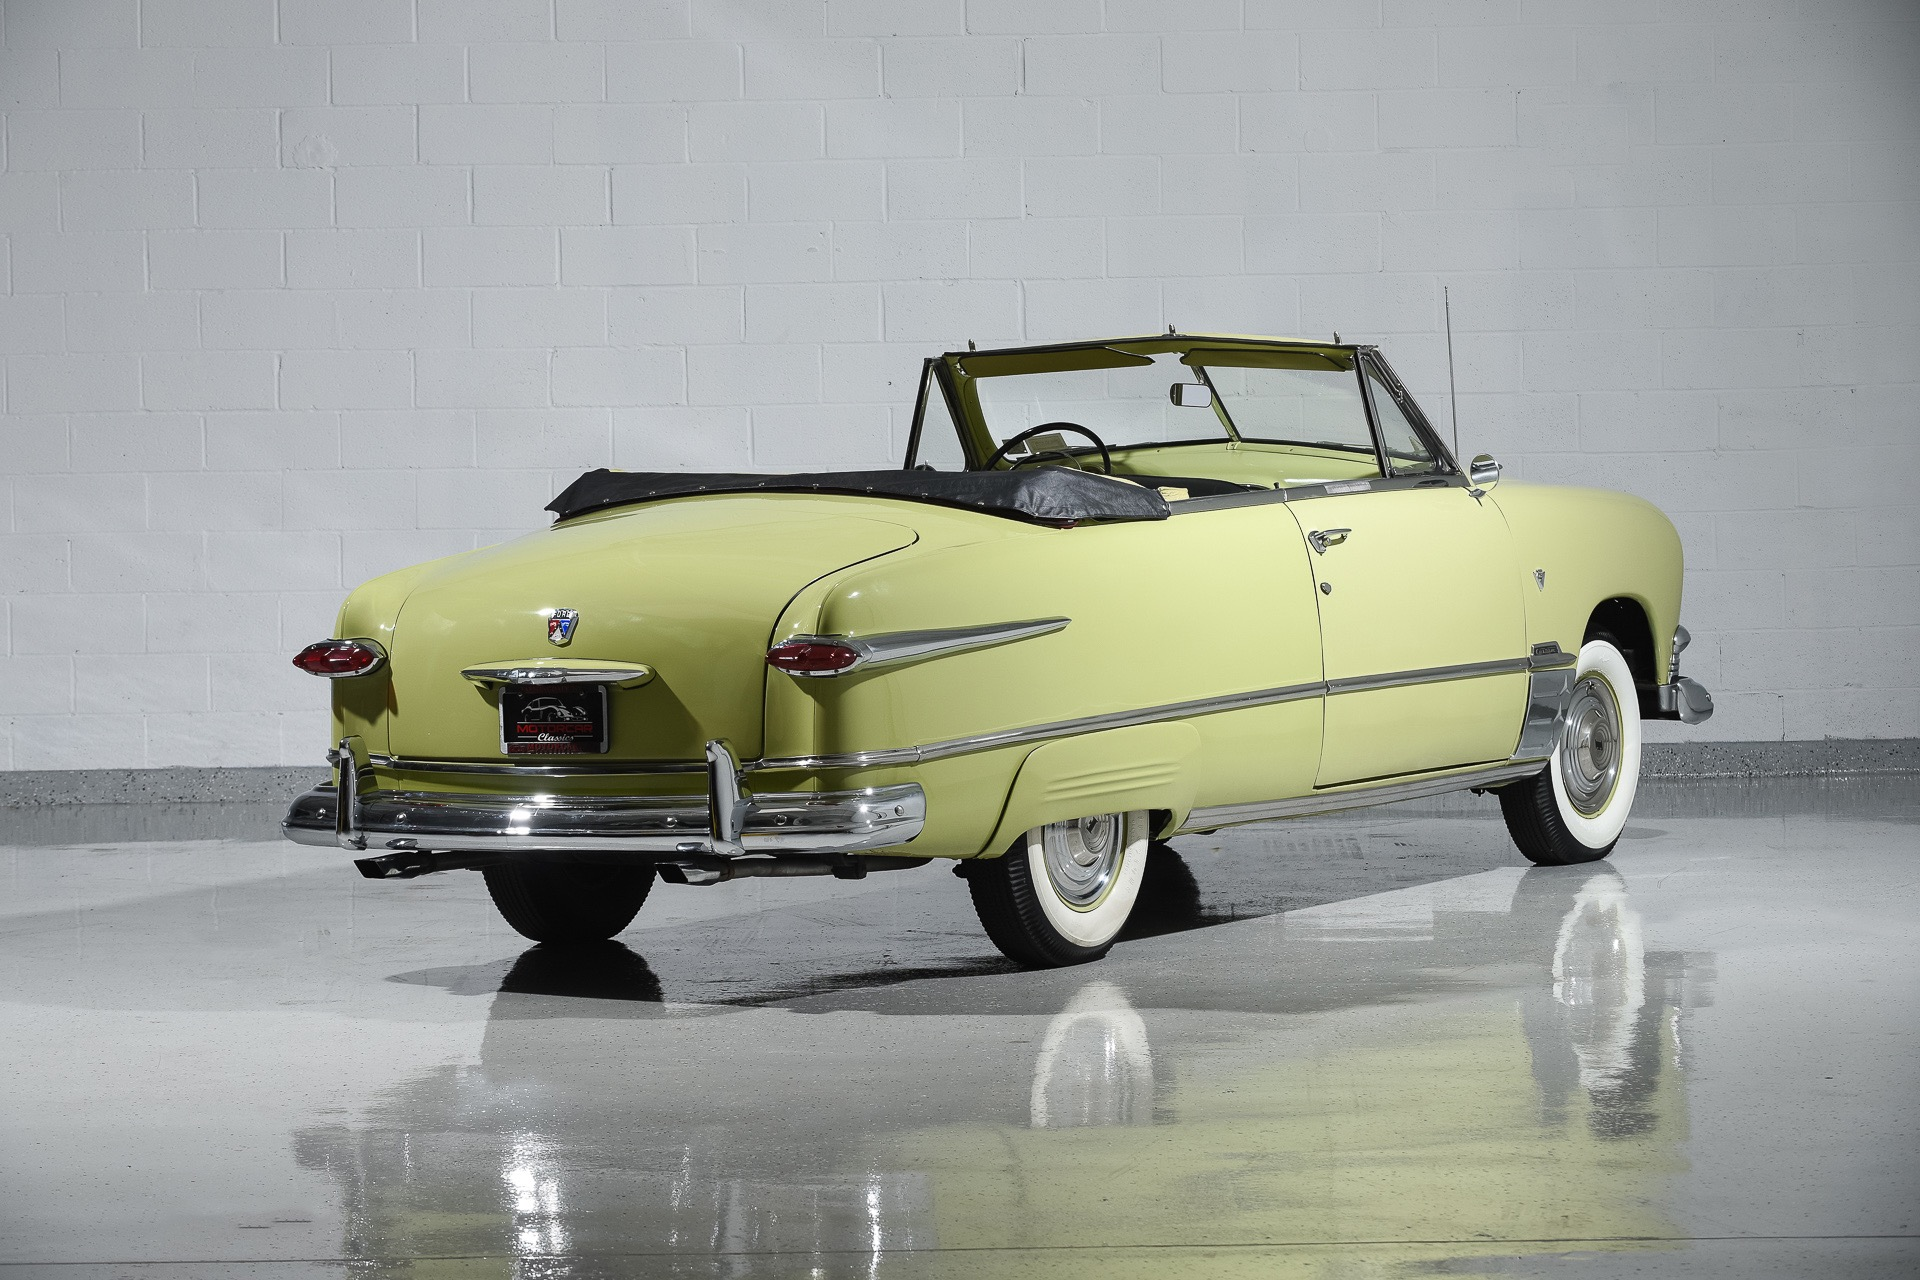 Used 1951 Ford Convertible For Sale ($34,900) | Motorcar